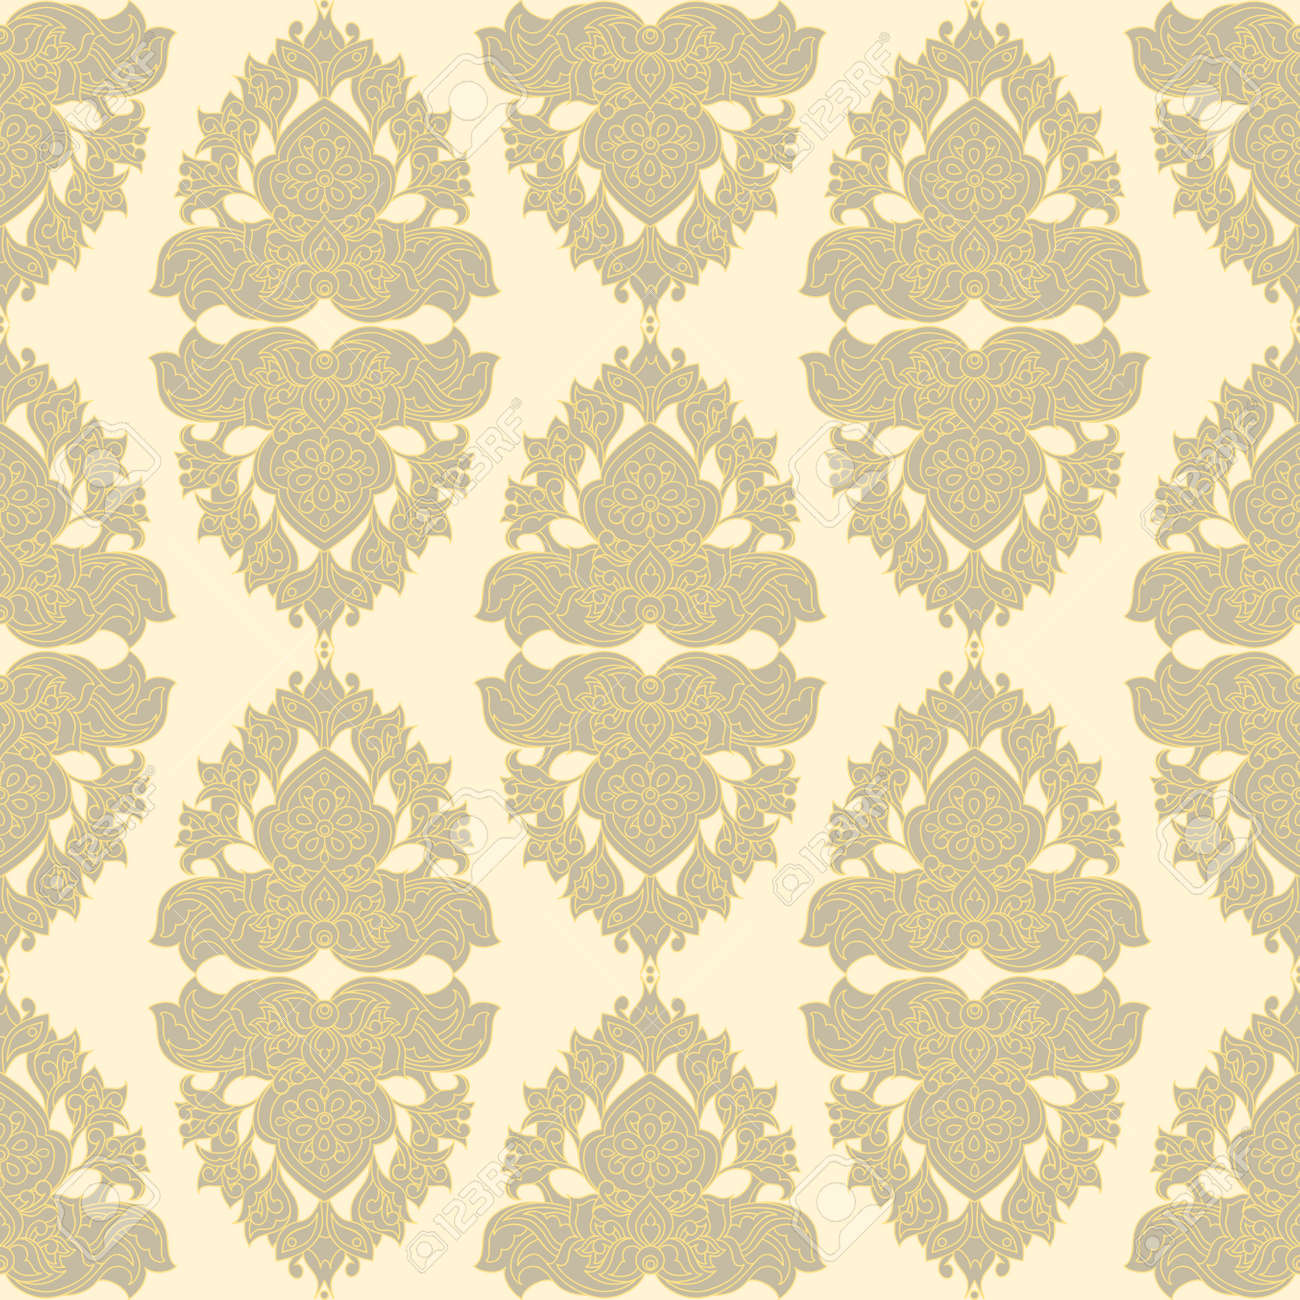 Baroque Style Wallpaper Seamless Vector Pattern Stock